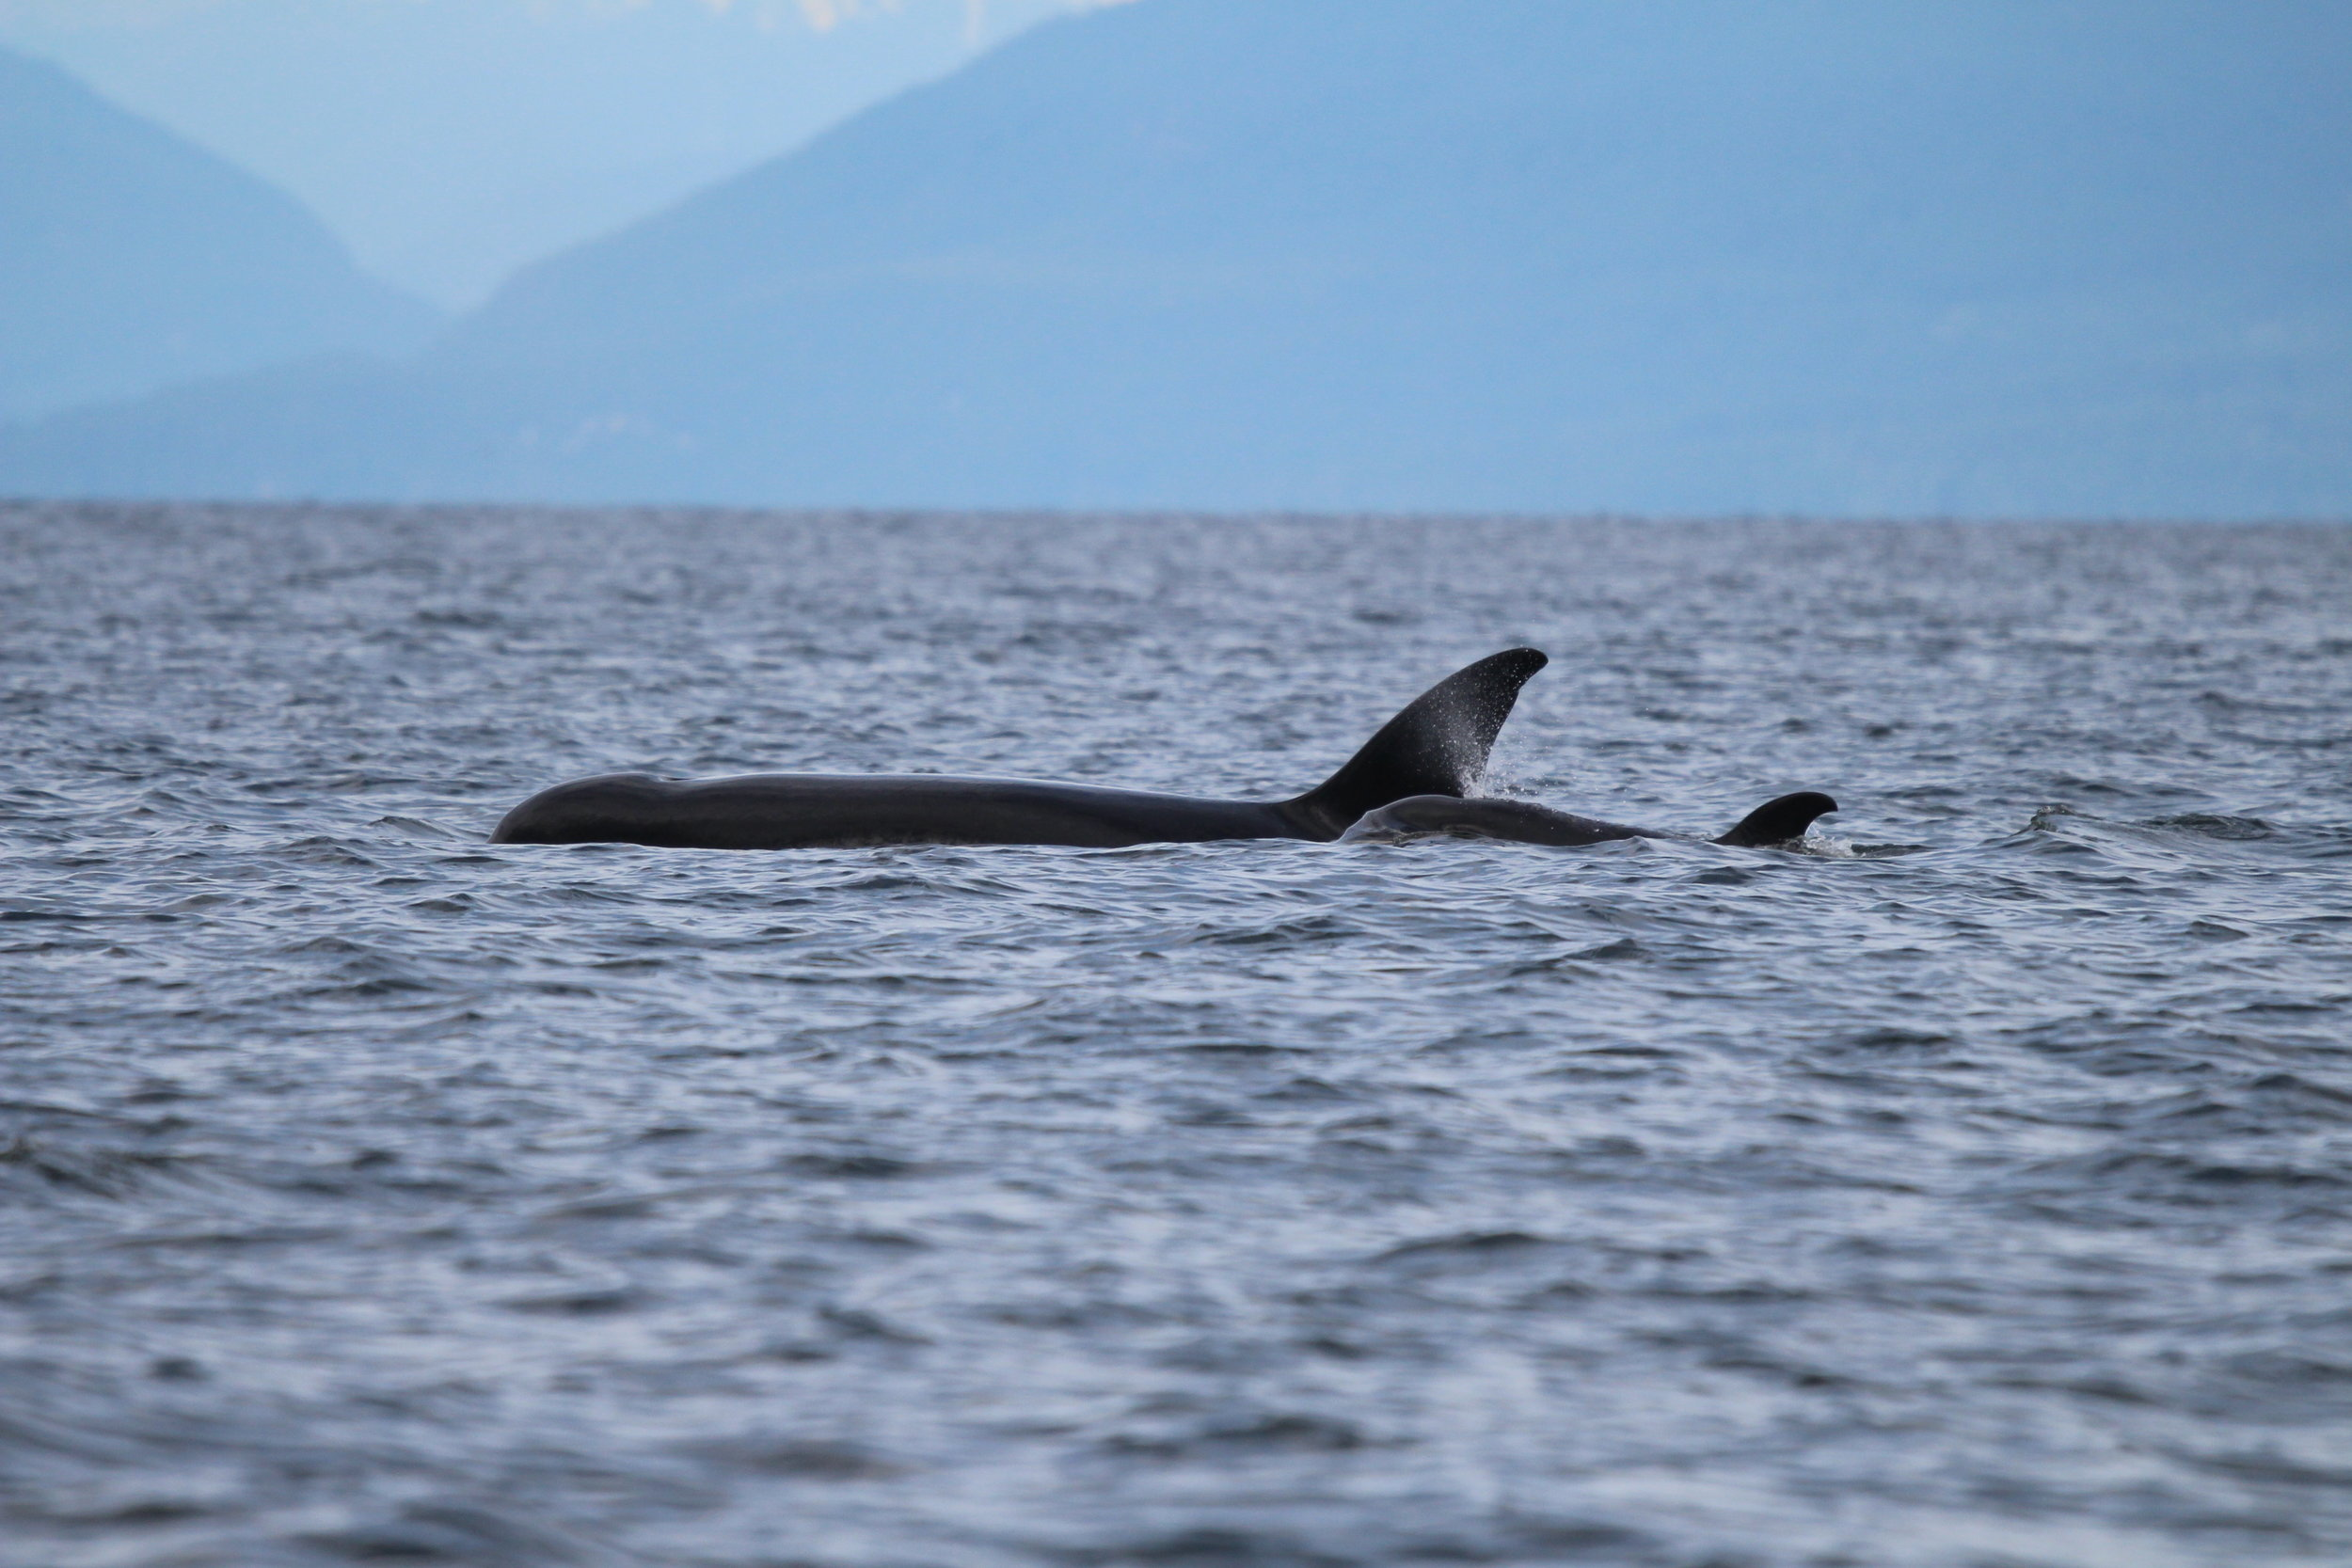 Mother and calf surface together on the afternoon tour.Photo by Natalie Reichenbacher